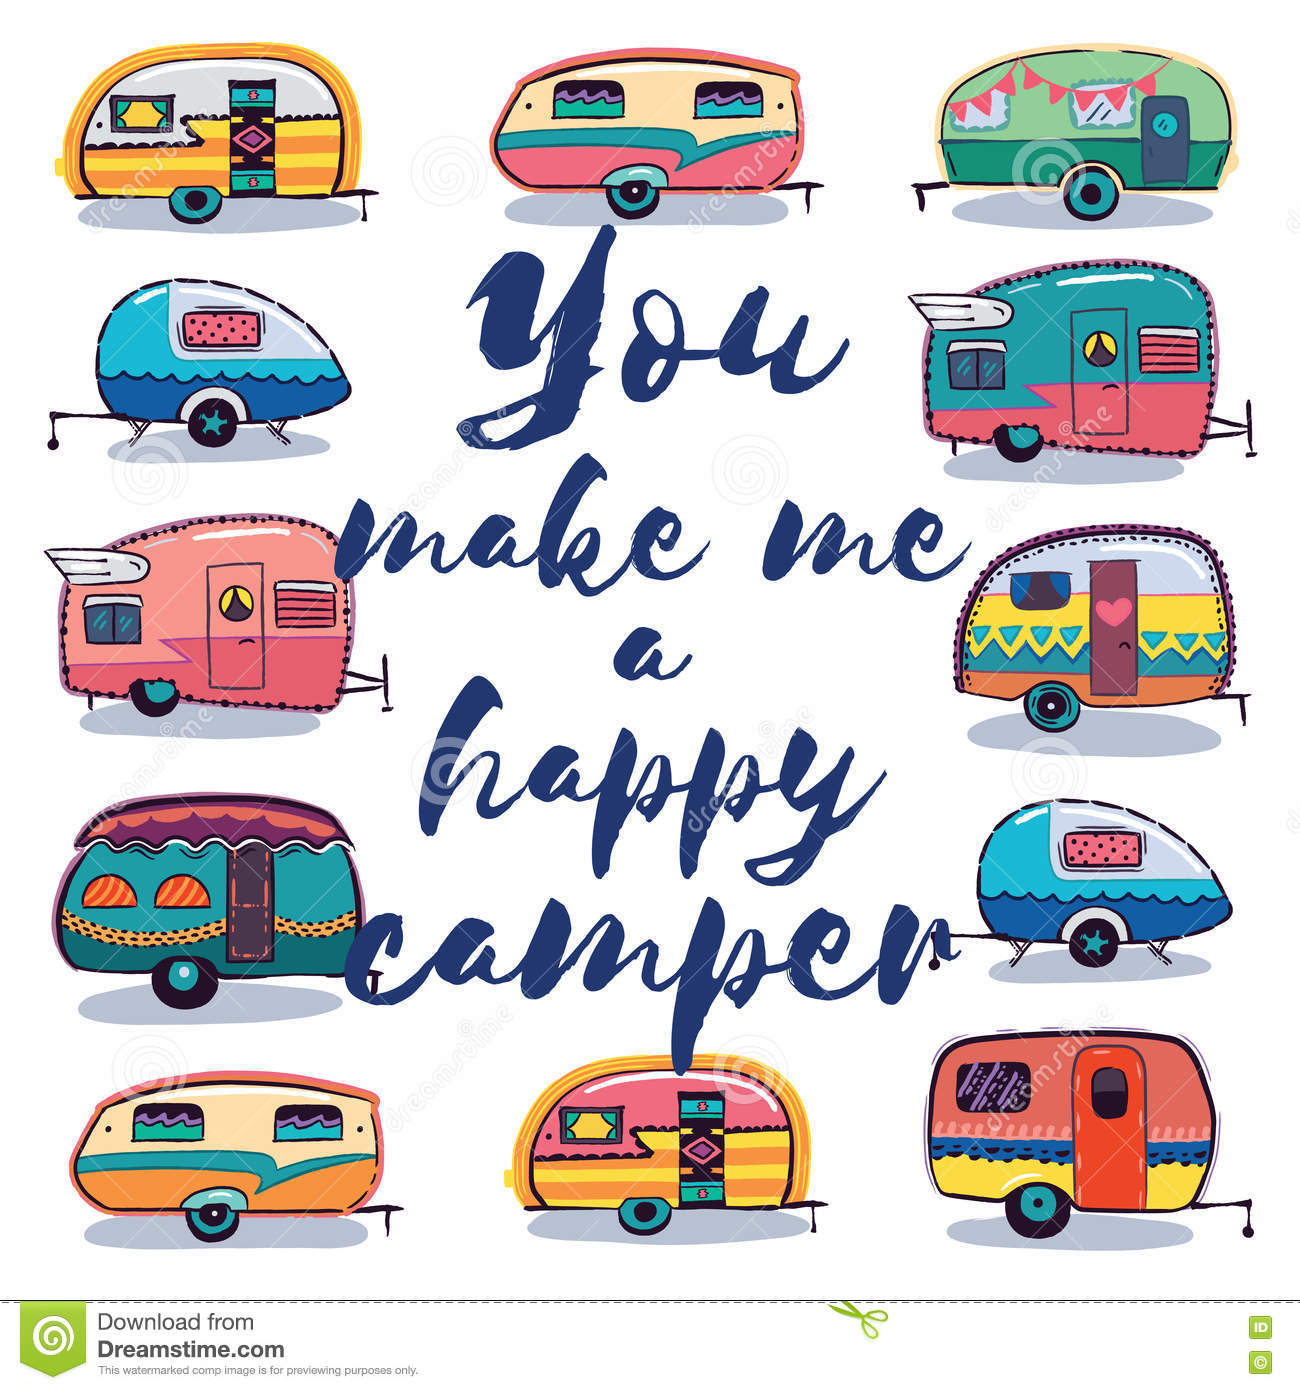 camper cartoons  illustrations   vector stock images beach party border clipart beach party background clipart